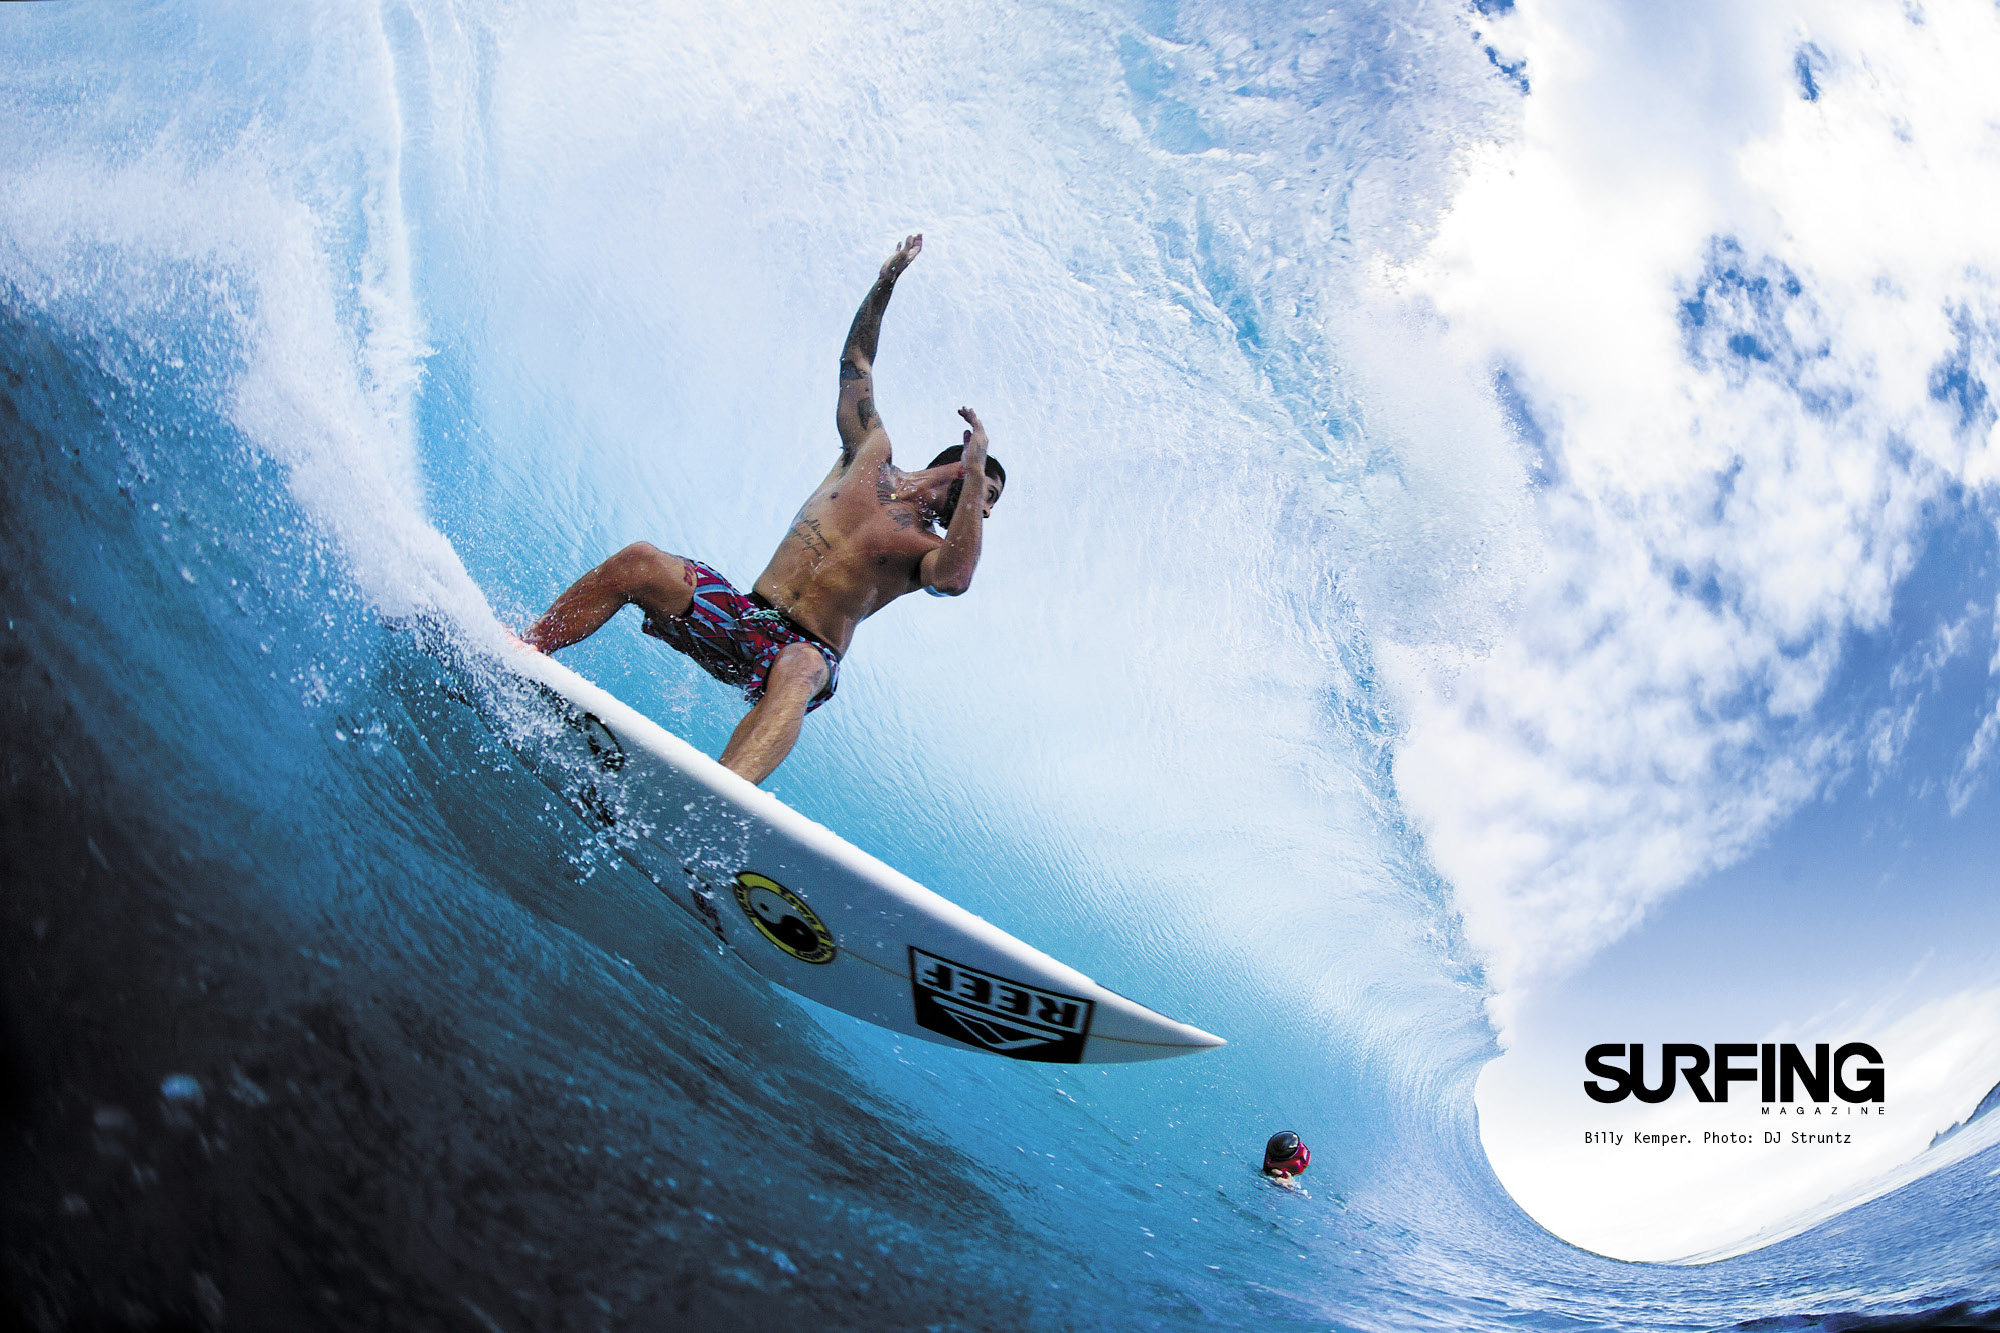 SURFING Wallpaper Issue 4 2015 SURFER Magazine